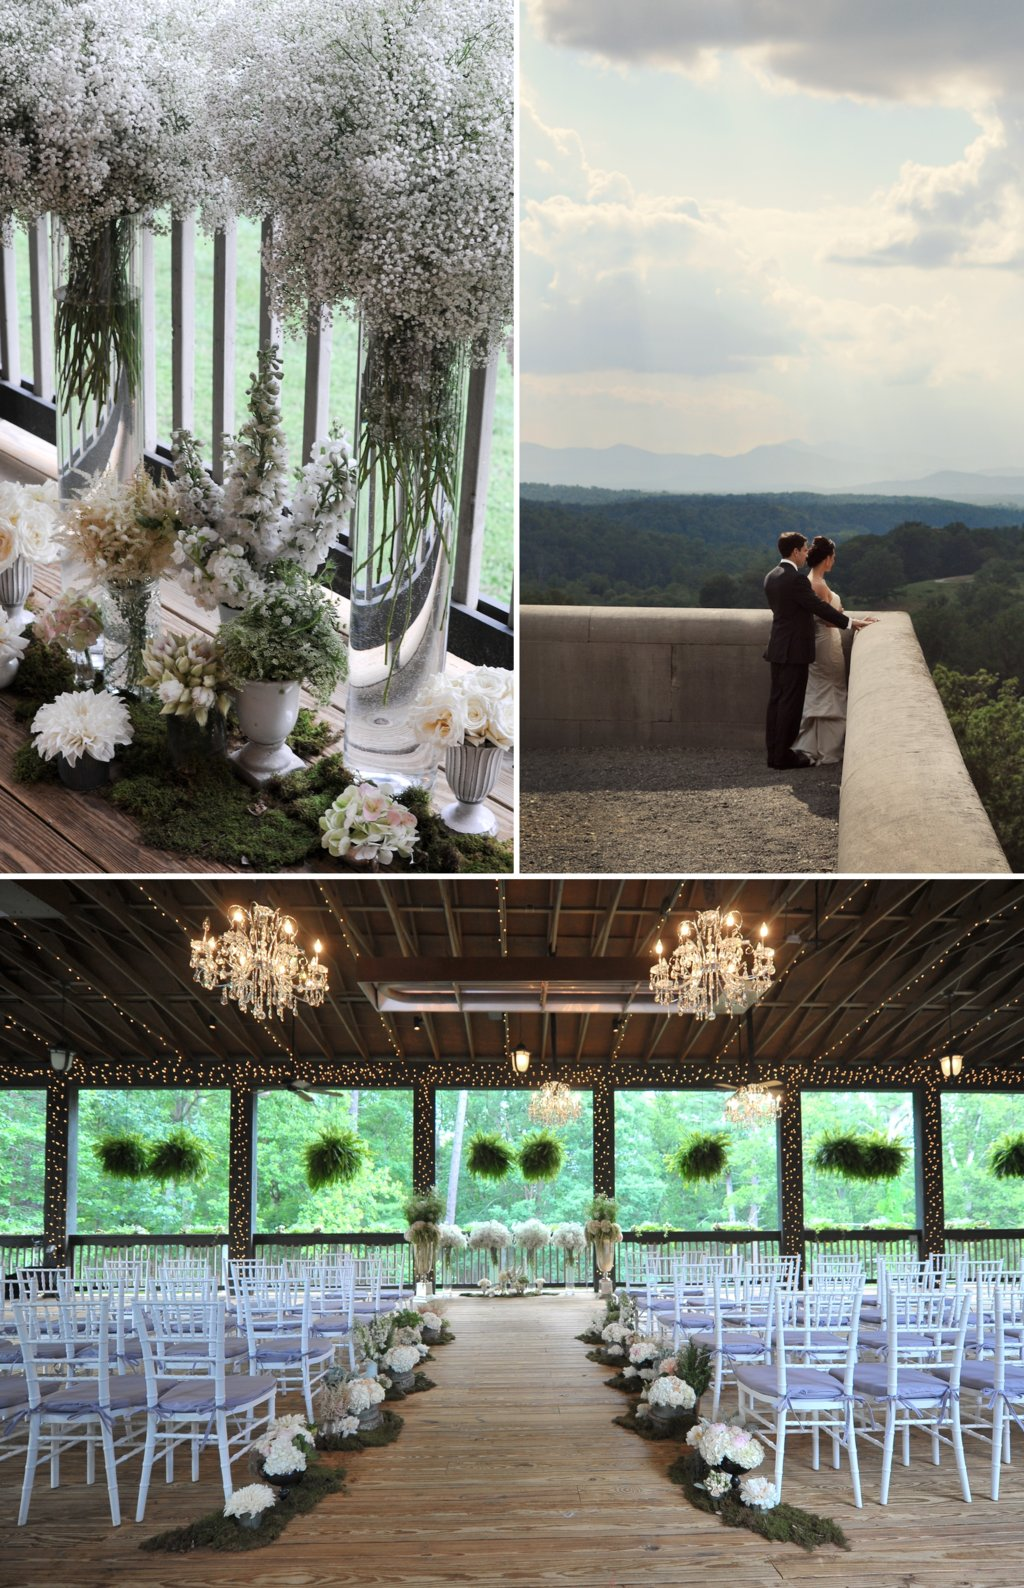 Elegant-wedding-in-north-carolina-classic-wedding-party-romantic-setting-3.full